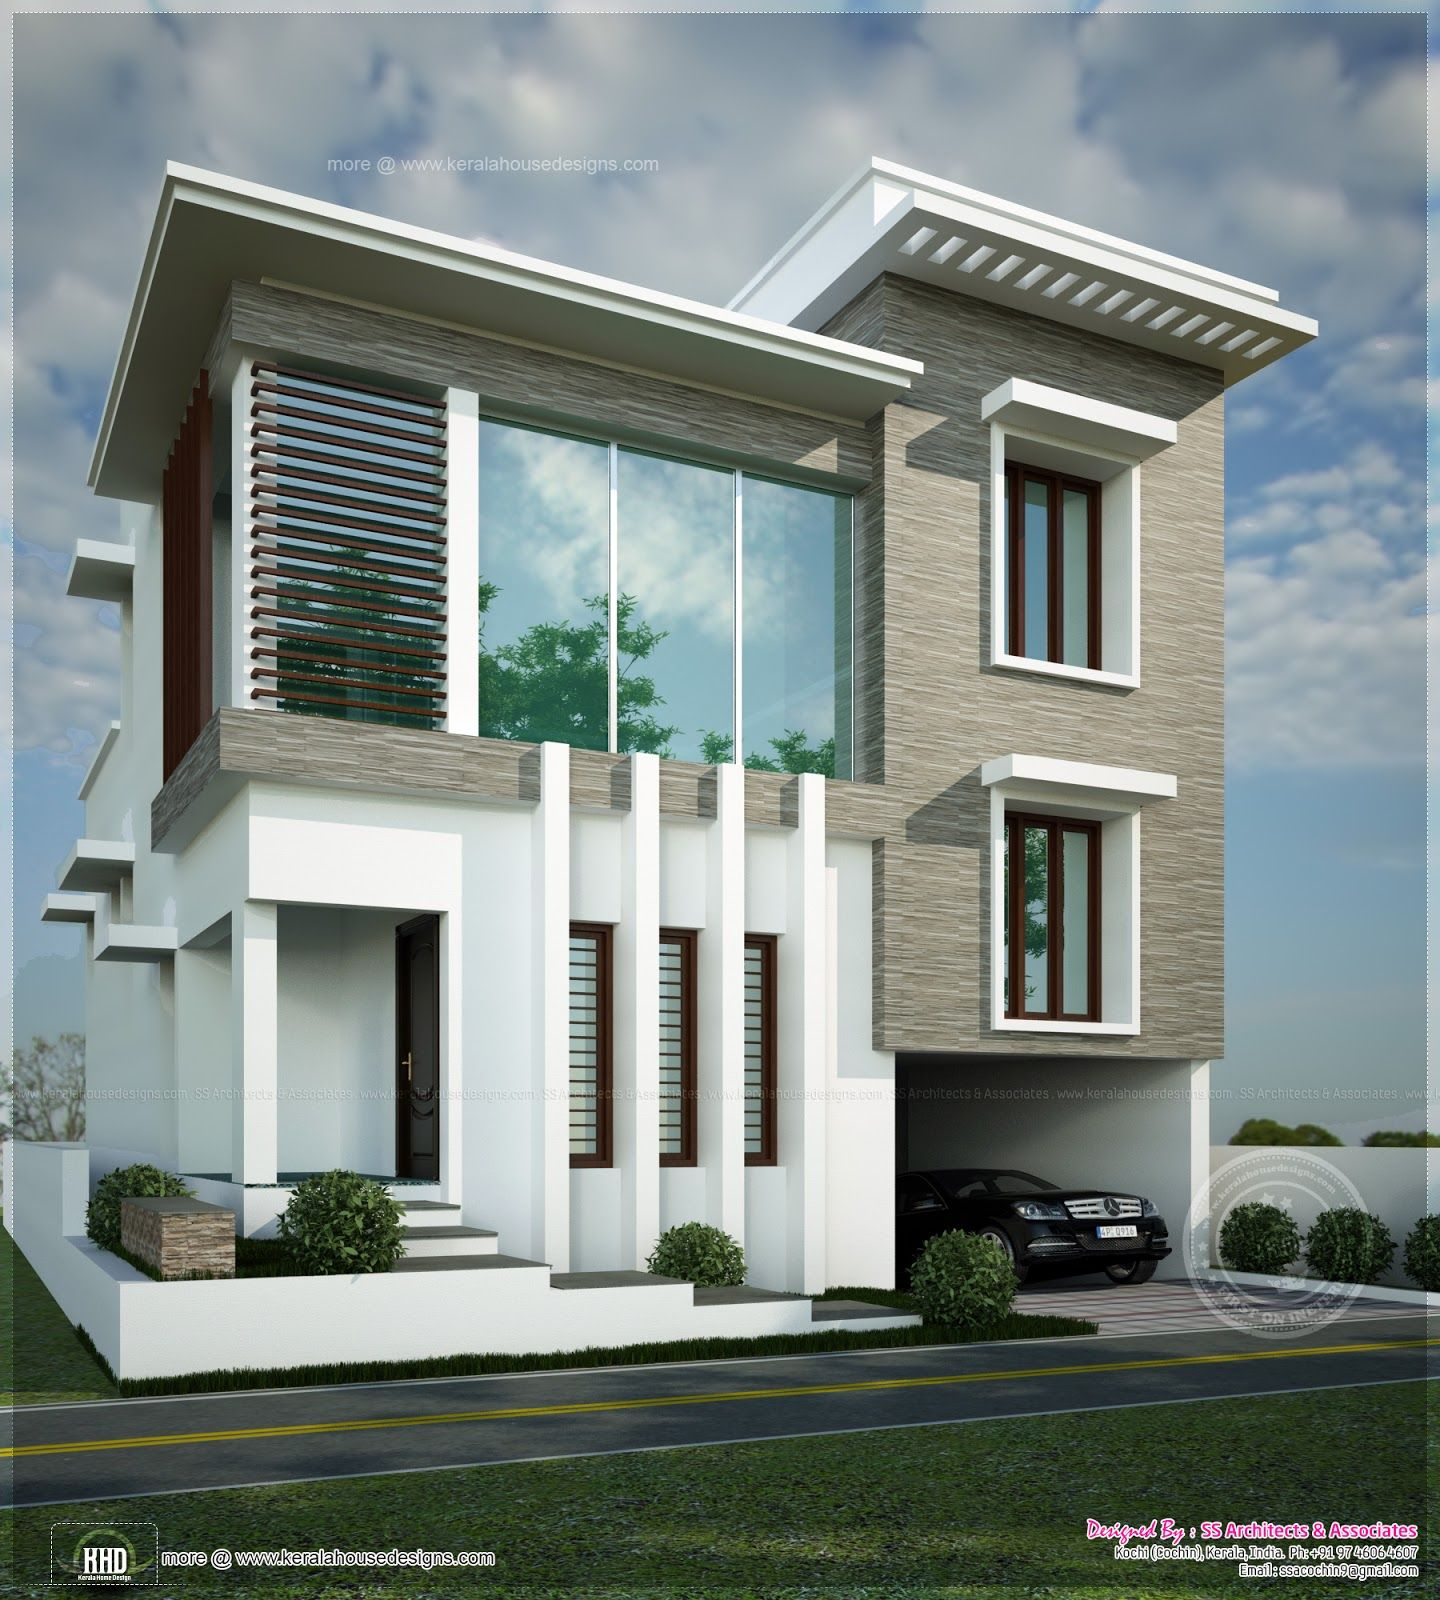 Square feet contemporary modern home kerala home design design studio designer sudheesh ellath - Modern house designs ...